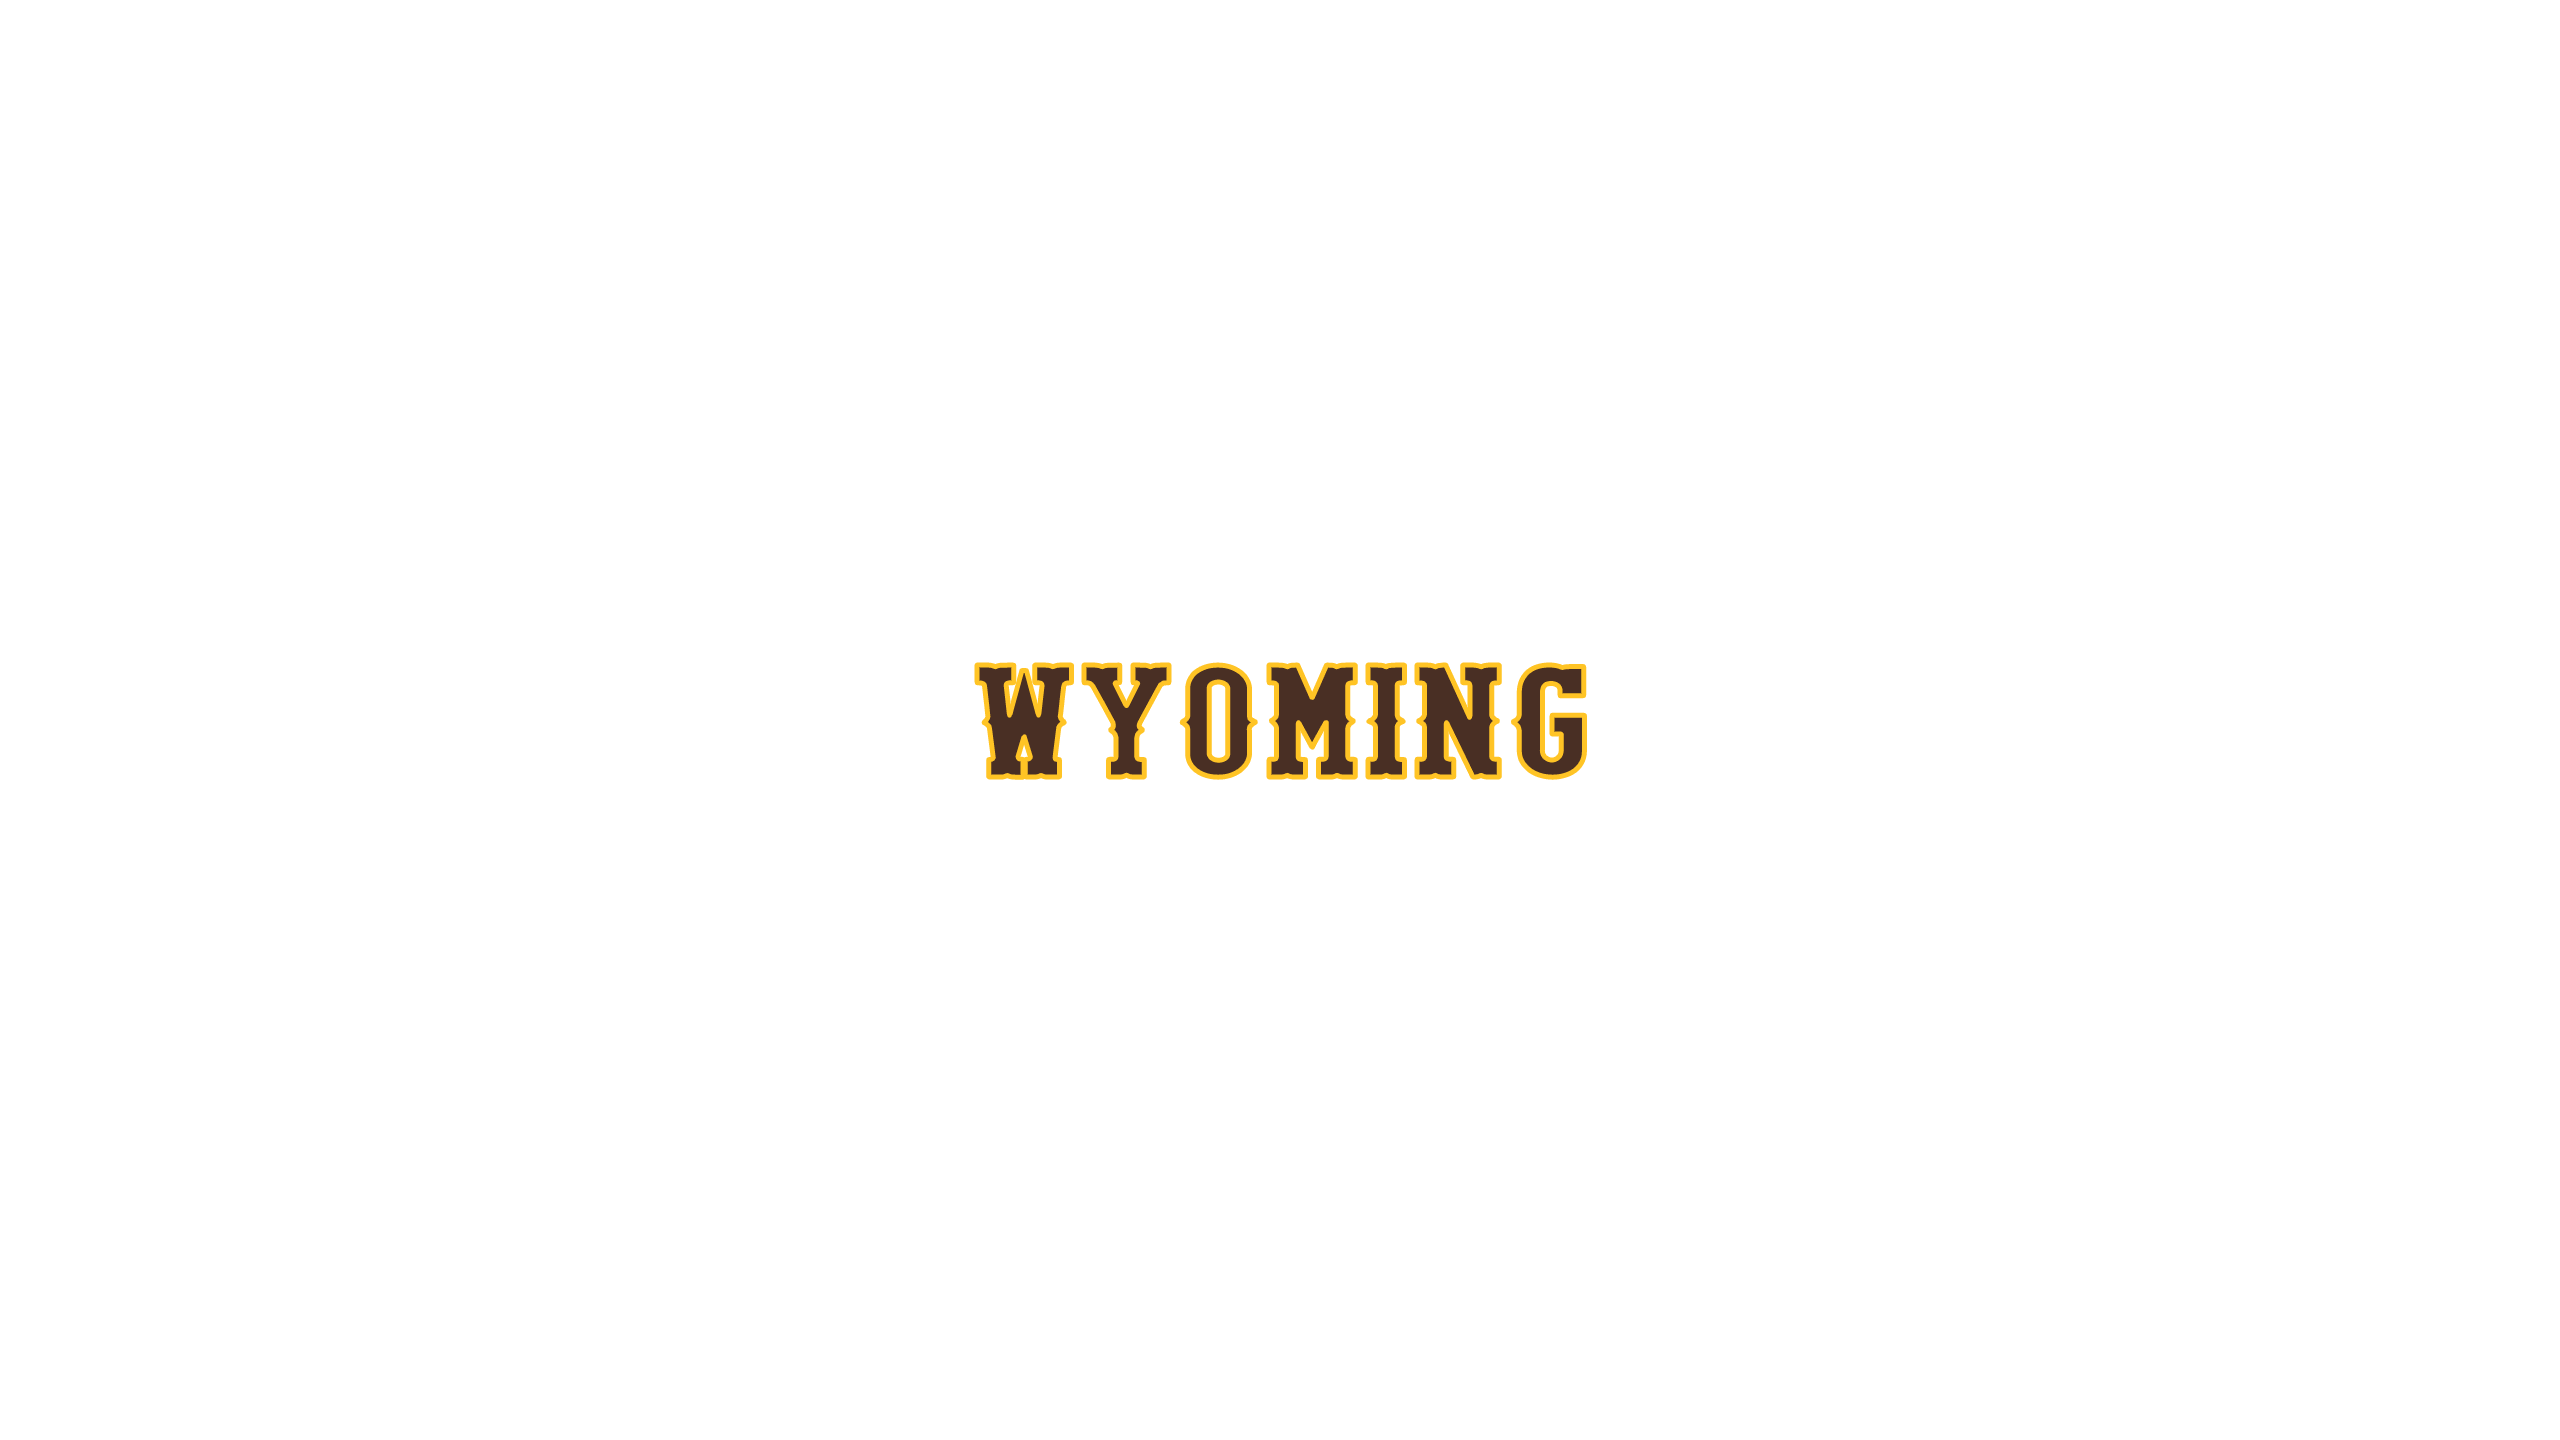 University of Wyoming Cowboys (Home)